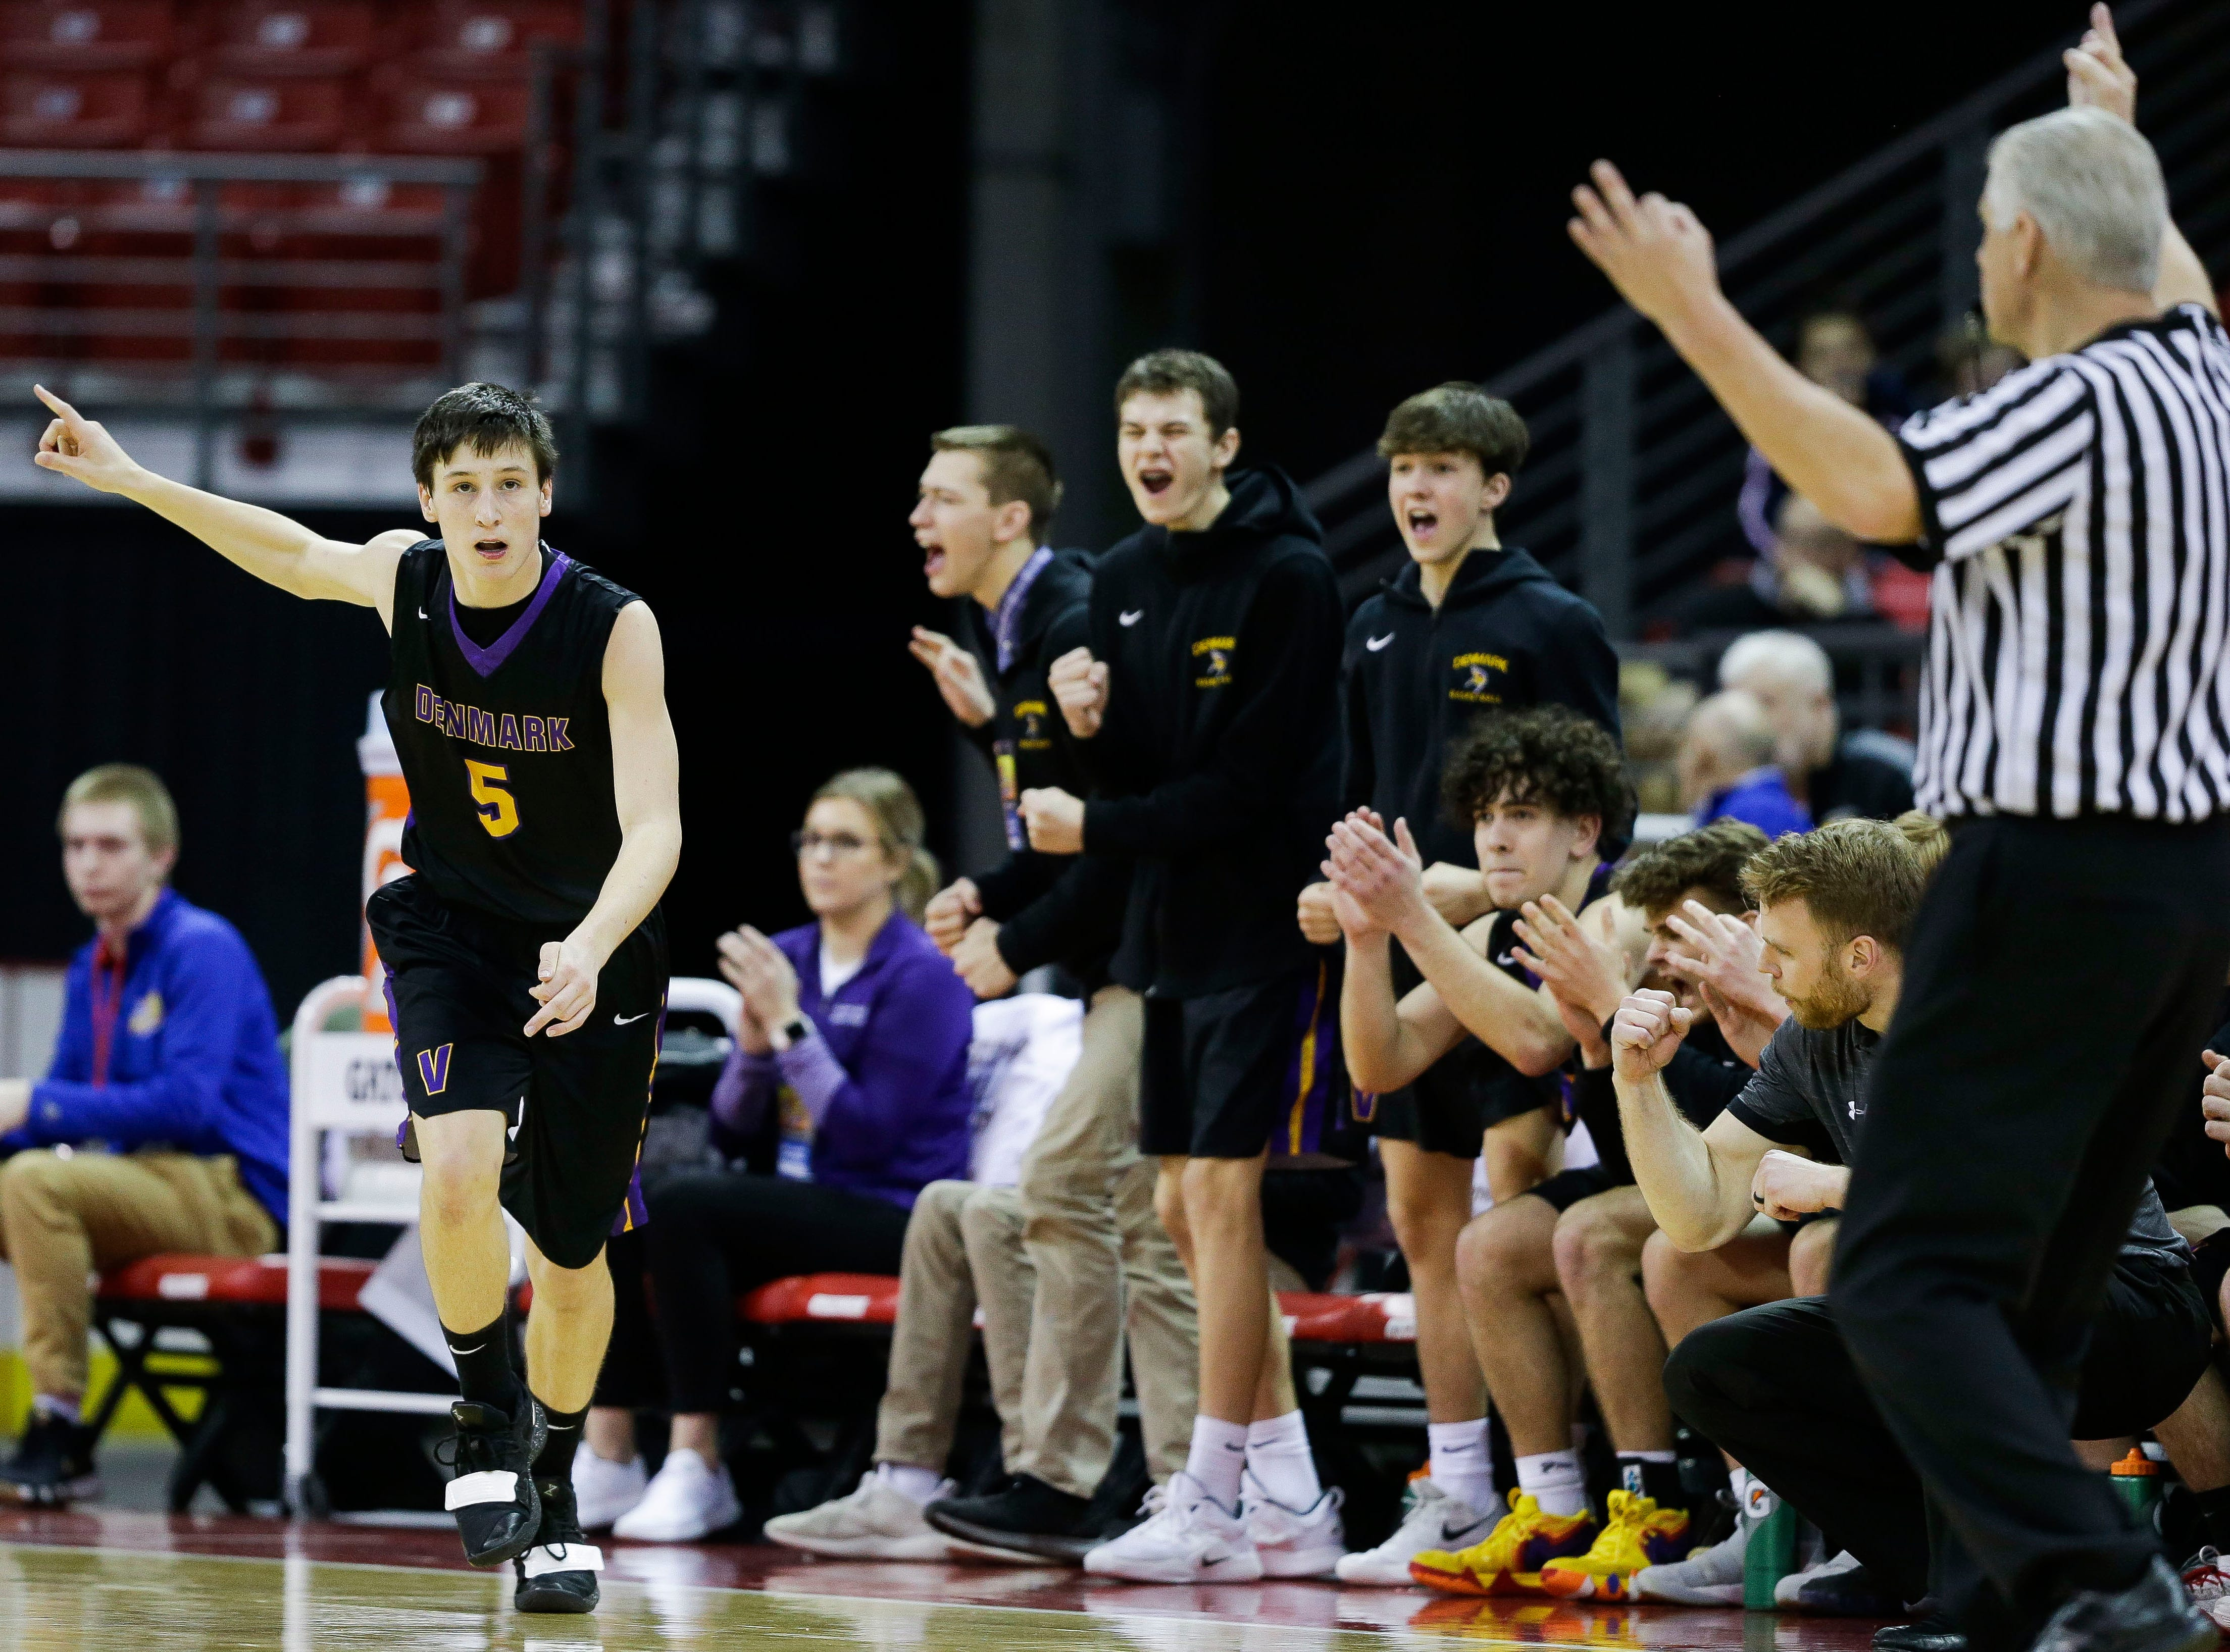 Denmark High School's Brennen Miller (5) reacts after hitting a 3-pointer against Waupun High School in a Division 3 boys basketball state semifinal on Thursday, March 14, 2019, at the Kohl Center in Madison, Wis.